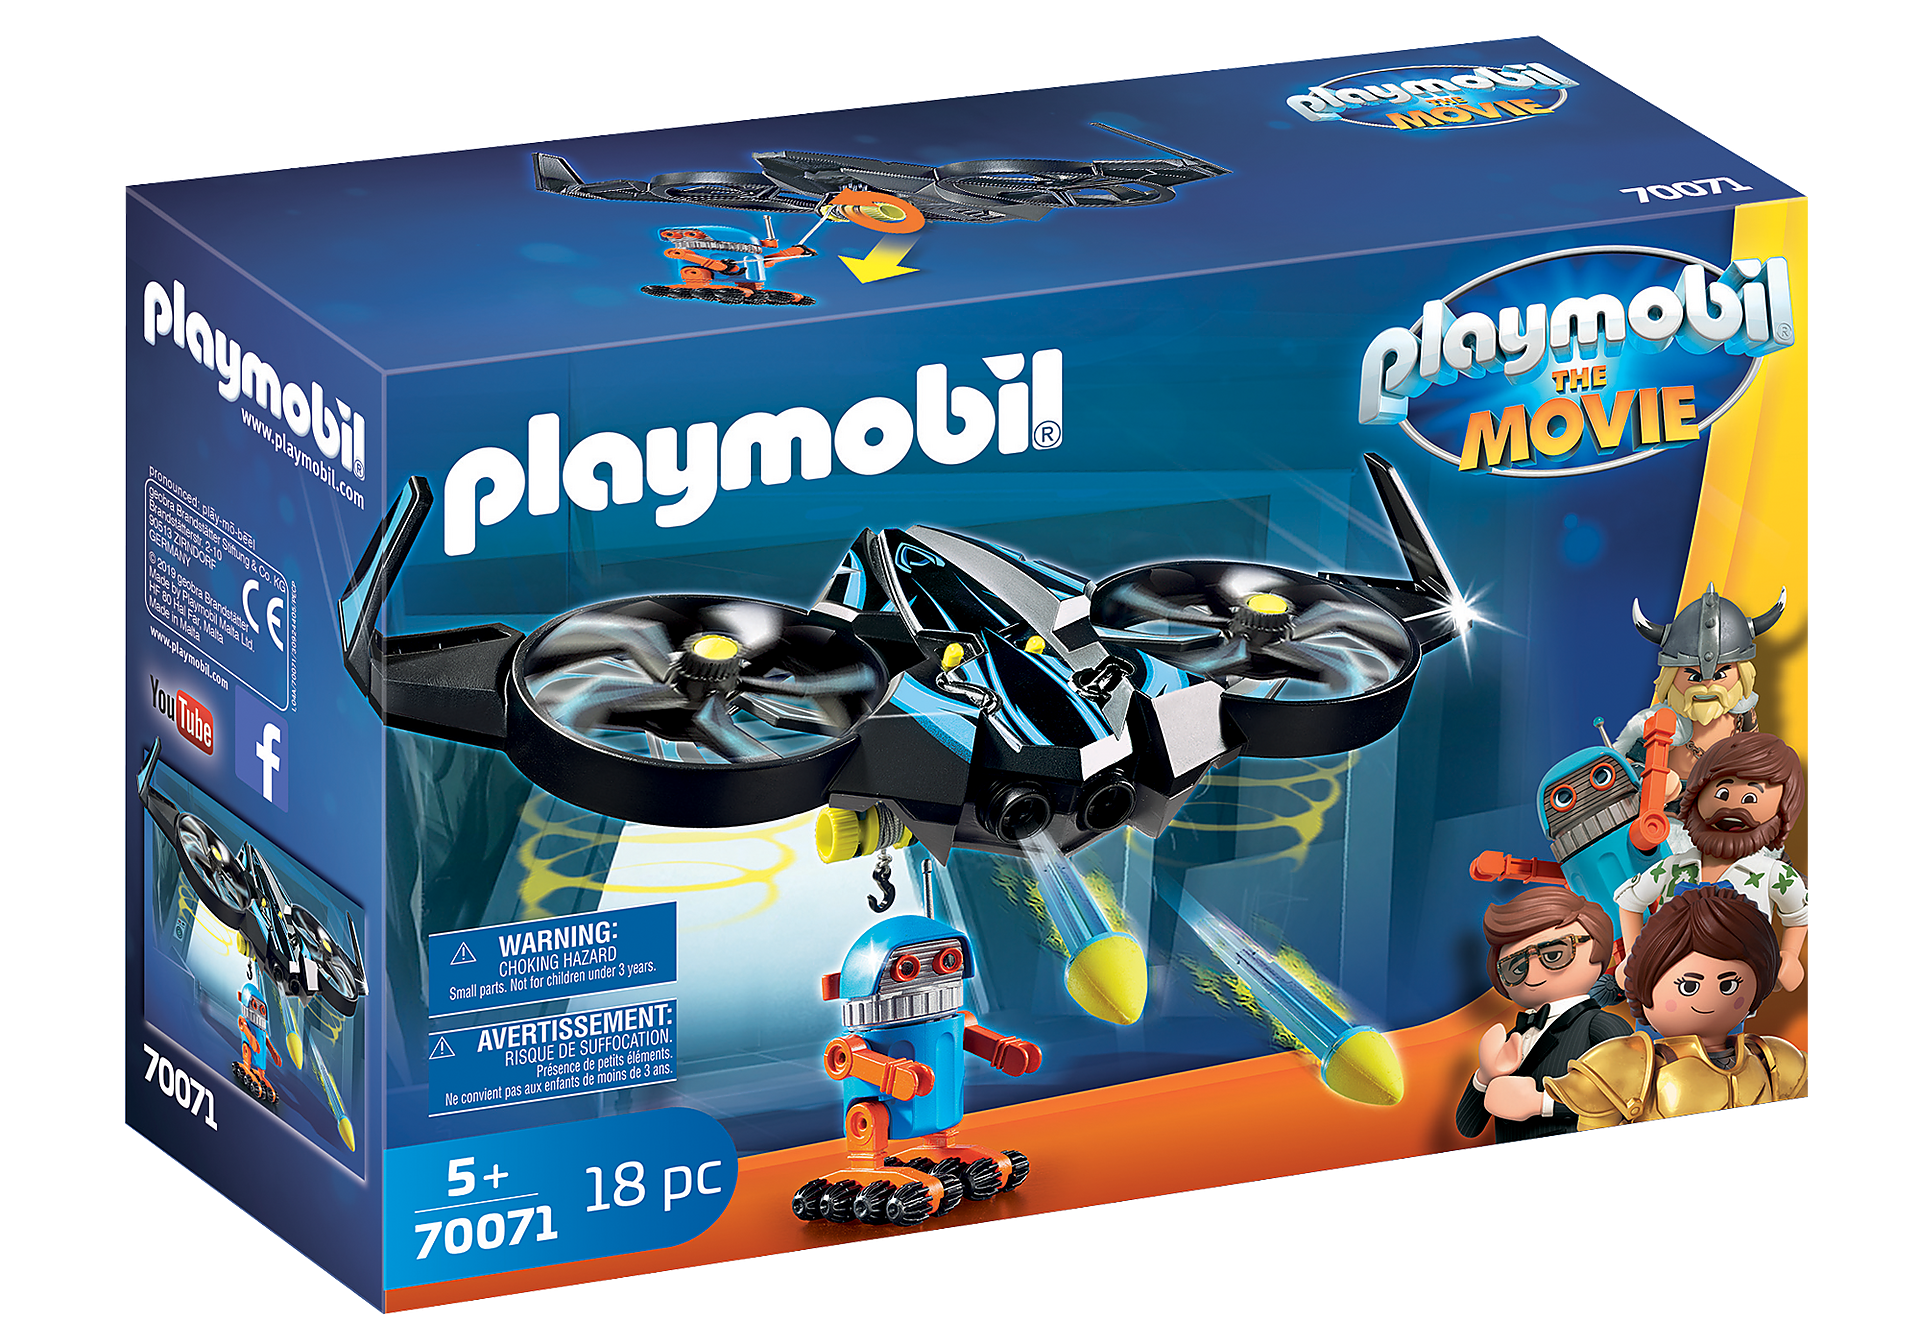 70071 PLAYMOBIL: THE MOVIE Robotitron with Drone zoom image2